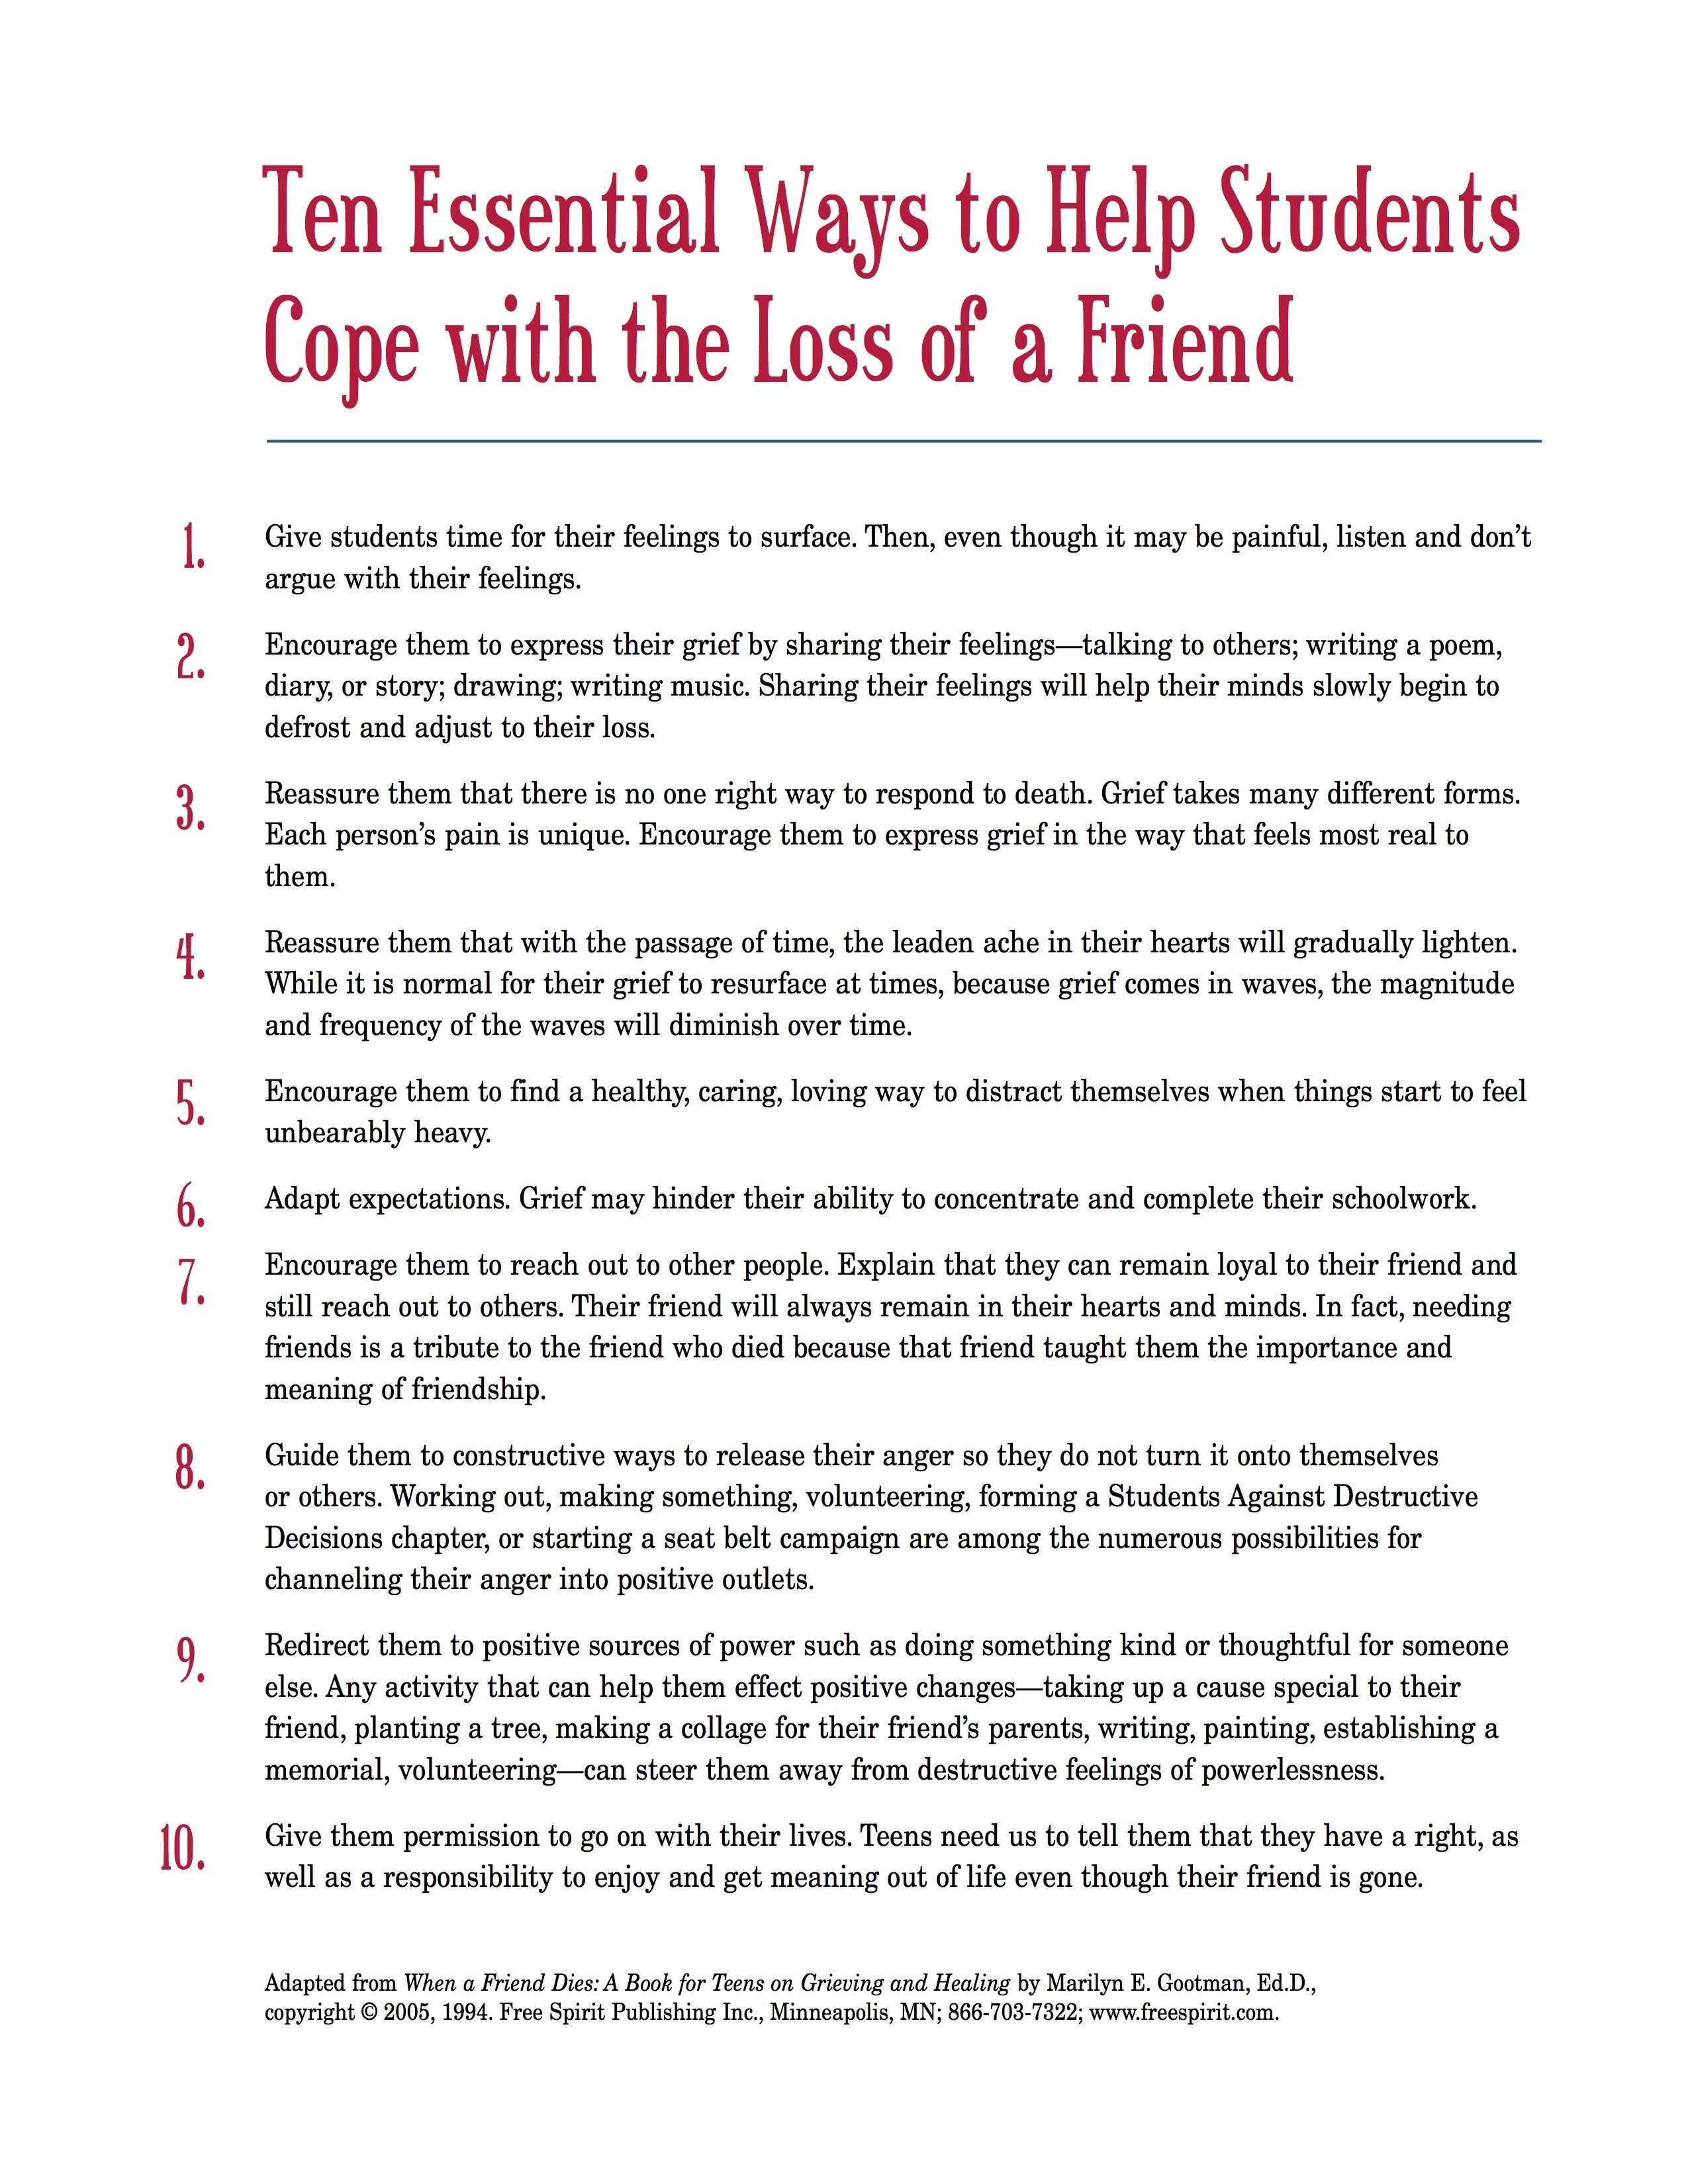 Free Printable Handout That School Counselors Can Share With - Free Printable Patient Education Handouts